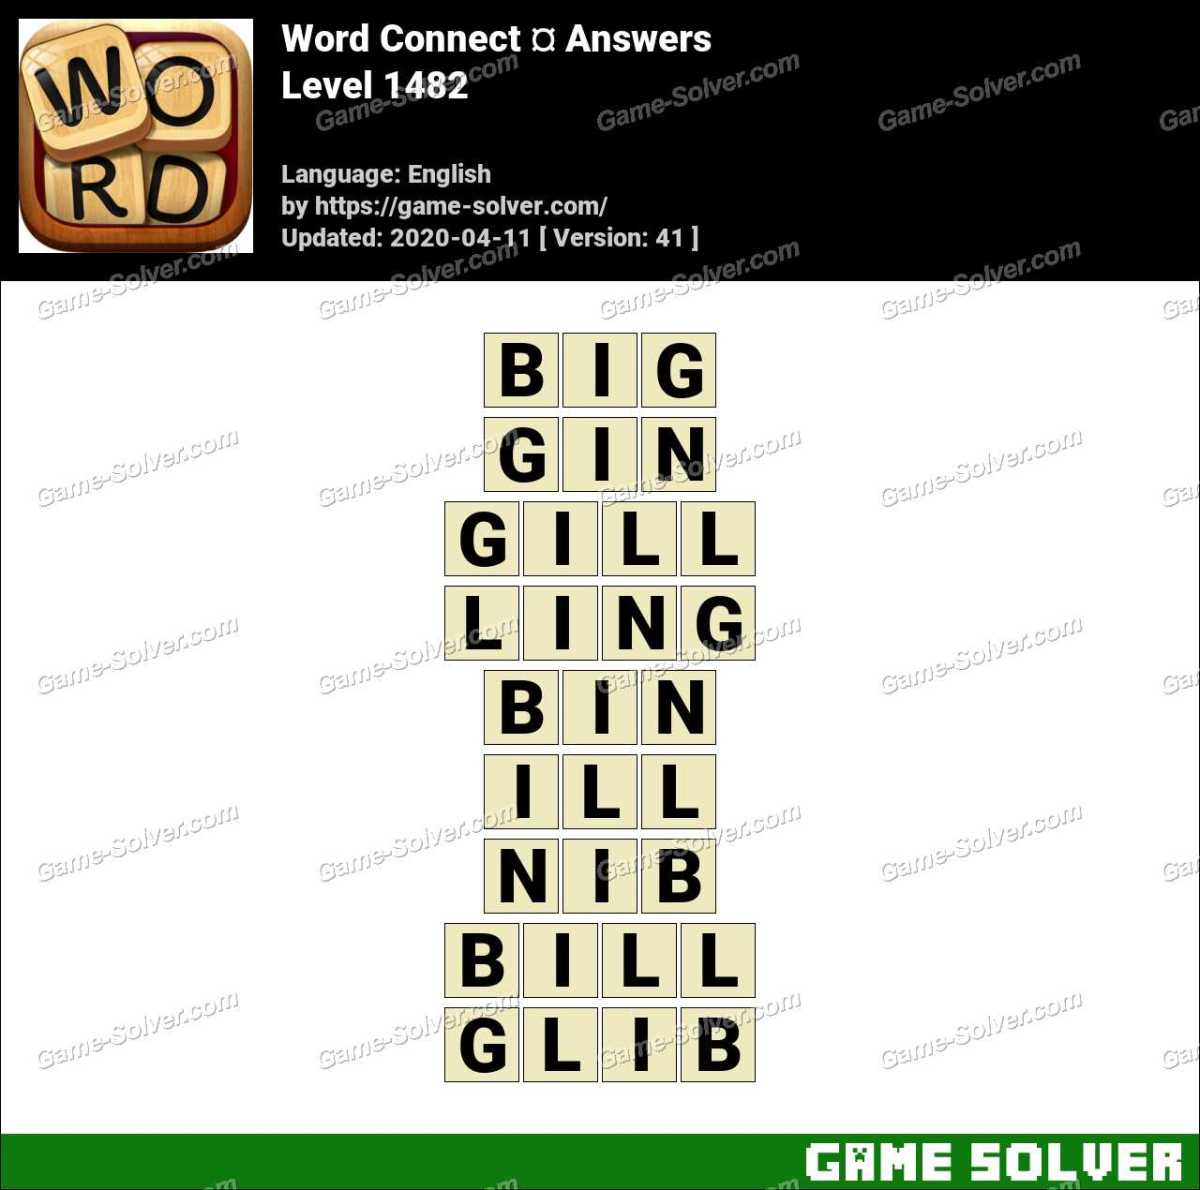 Word Connect Level 1482 Answers